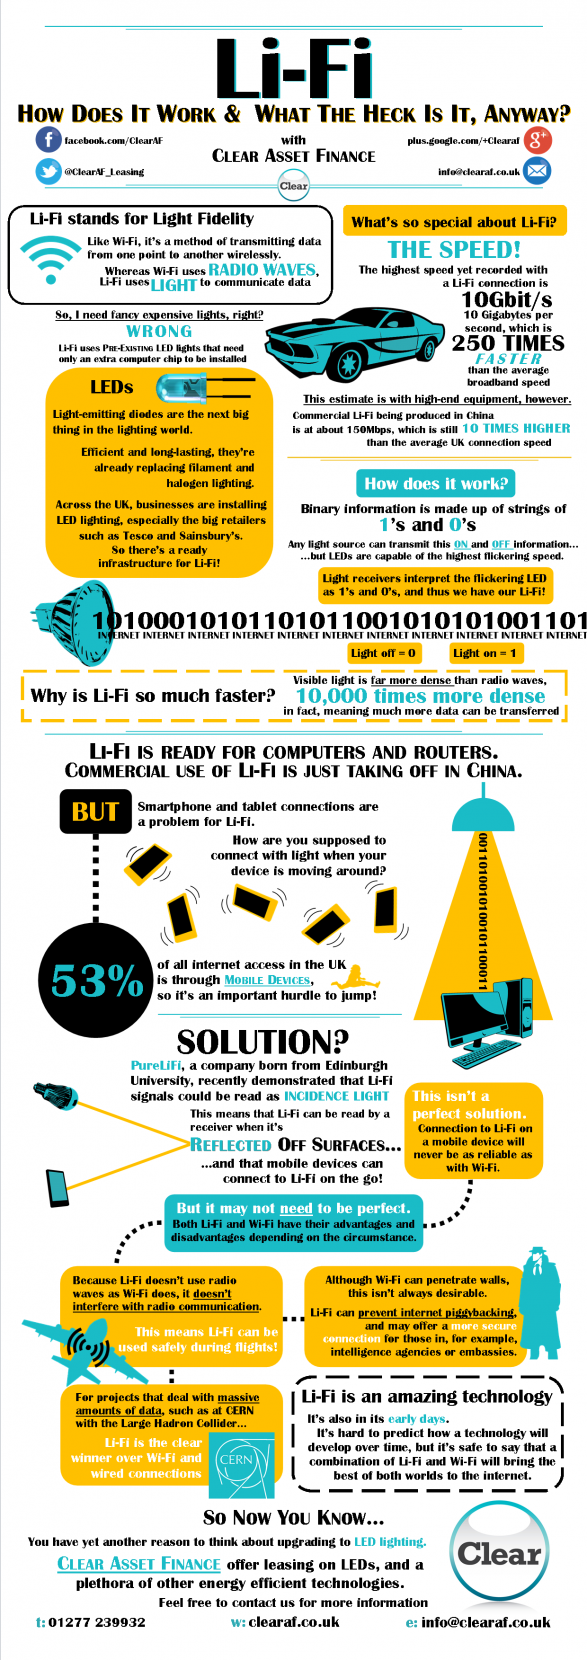 Li-Fi - How Does It Work?